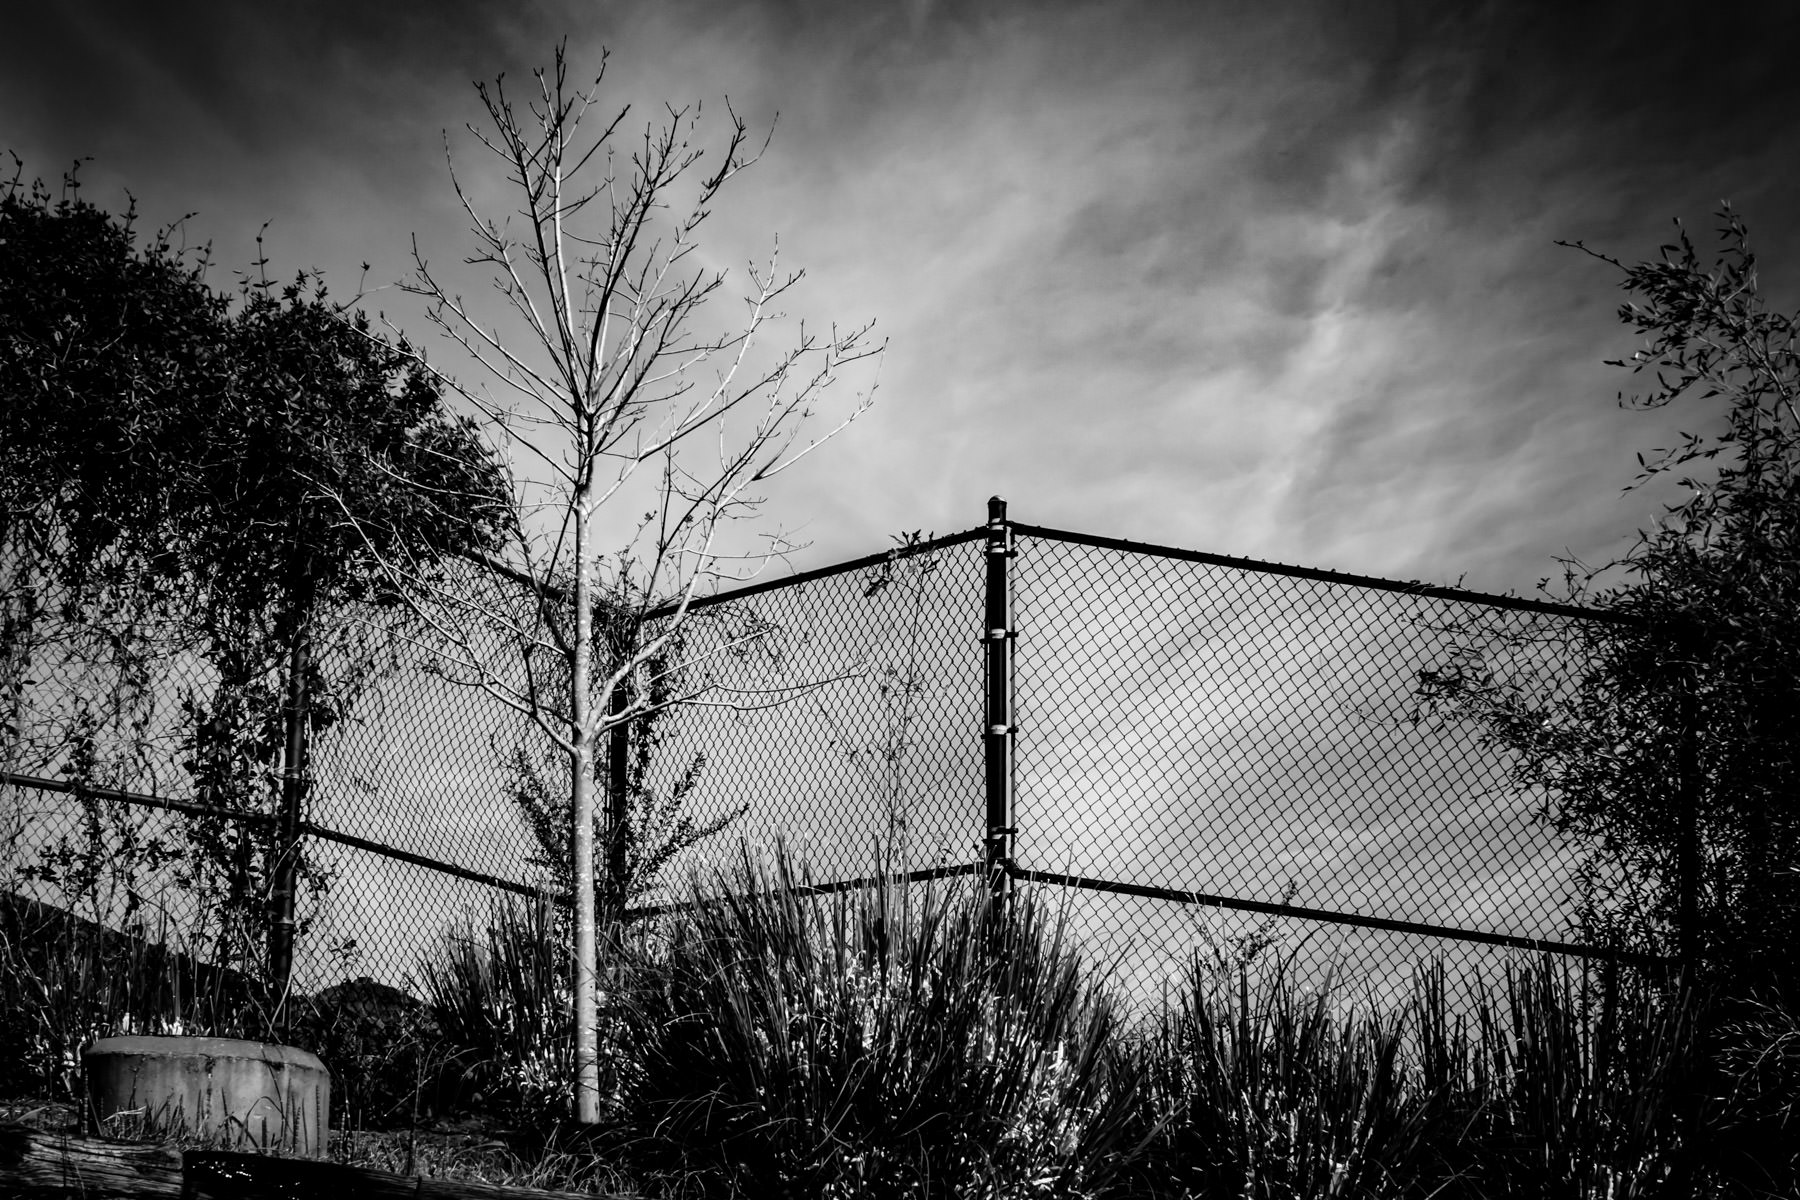 A fence at Caldwell Zoo, Tyler, Texas.